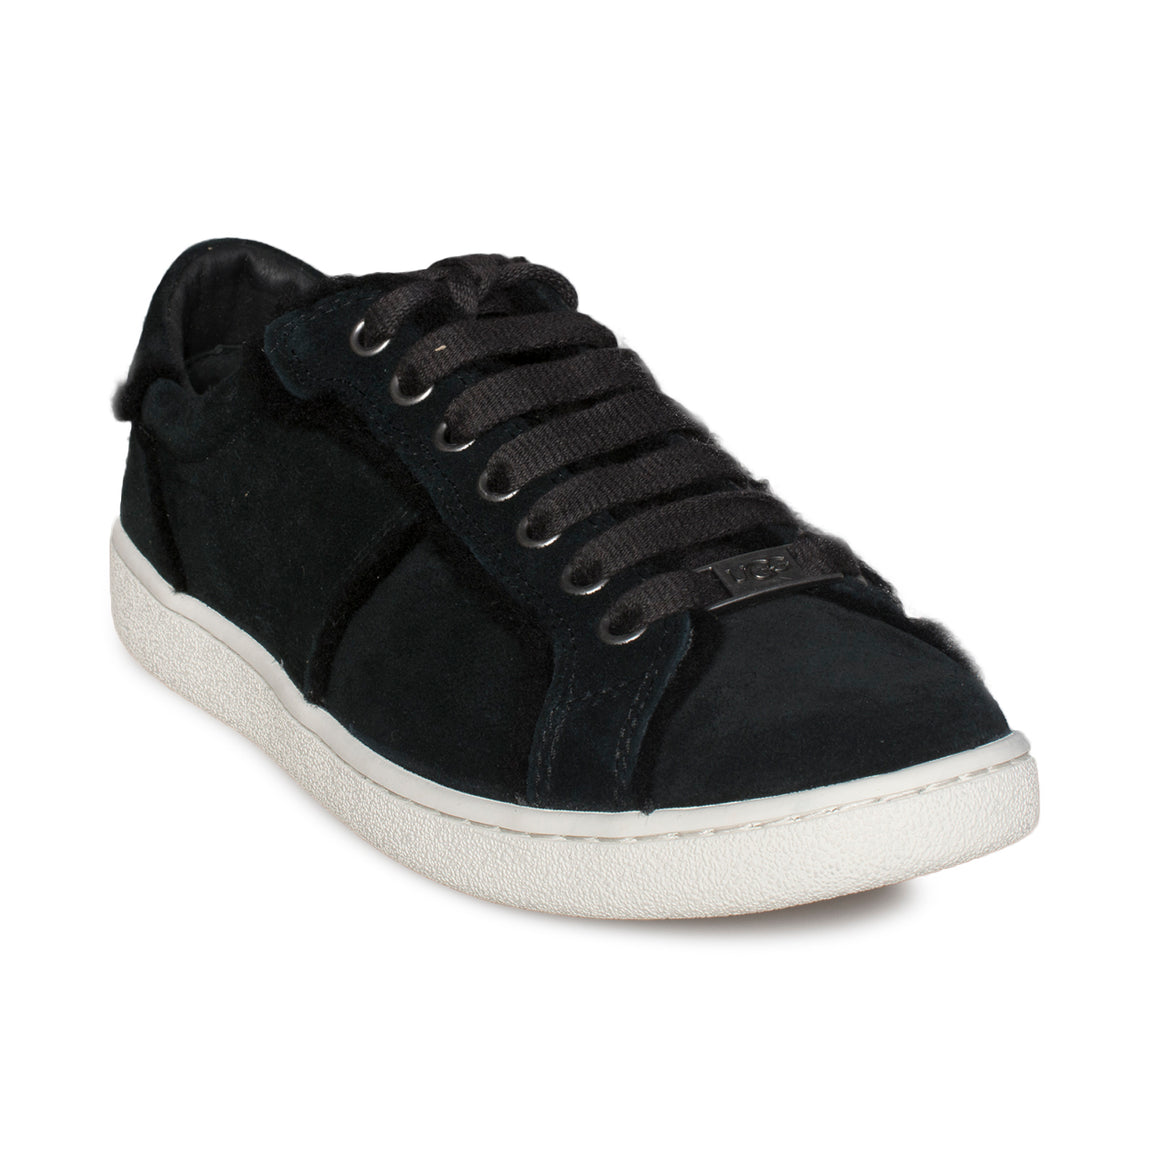 UGG Milo Spill Seam Black Sneakers - Women's